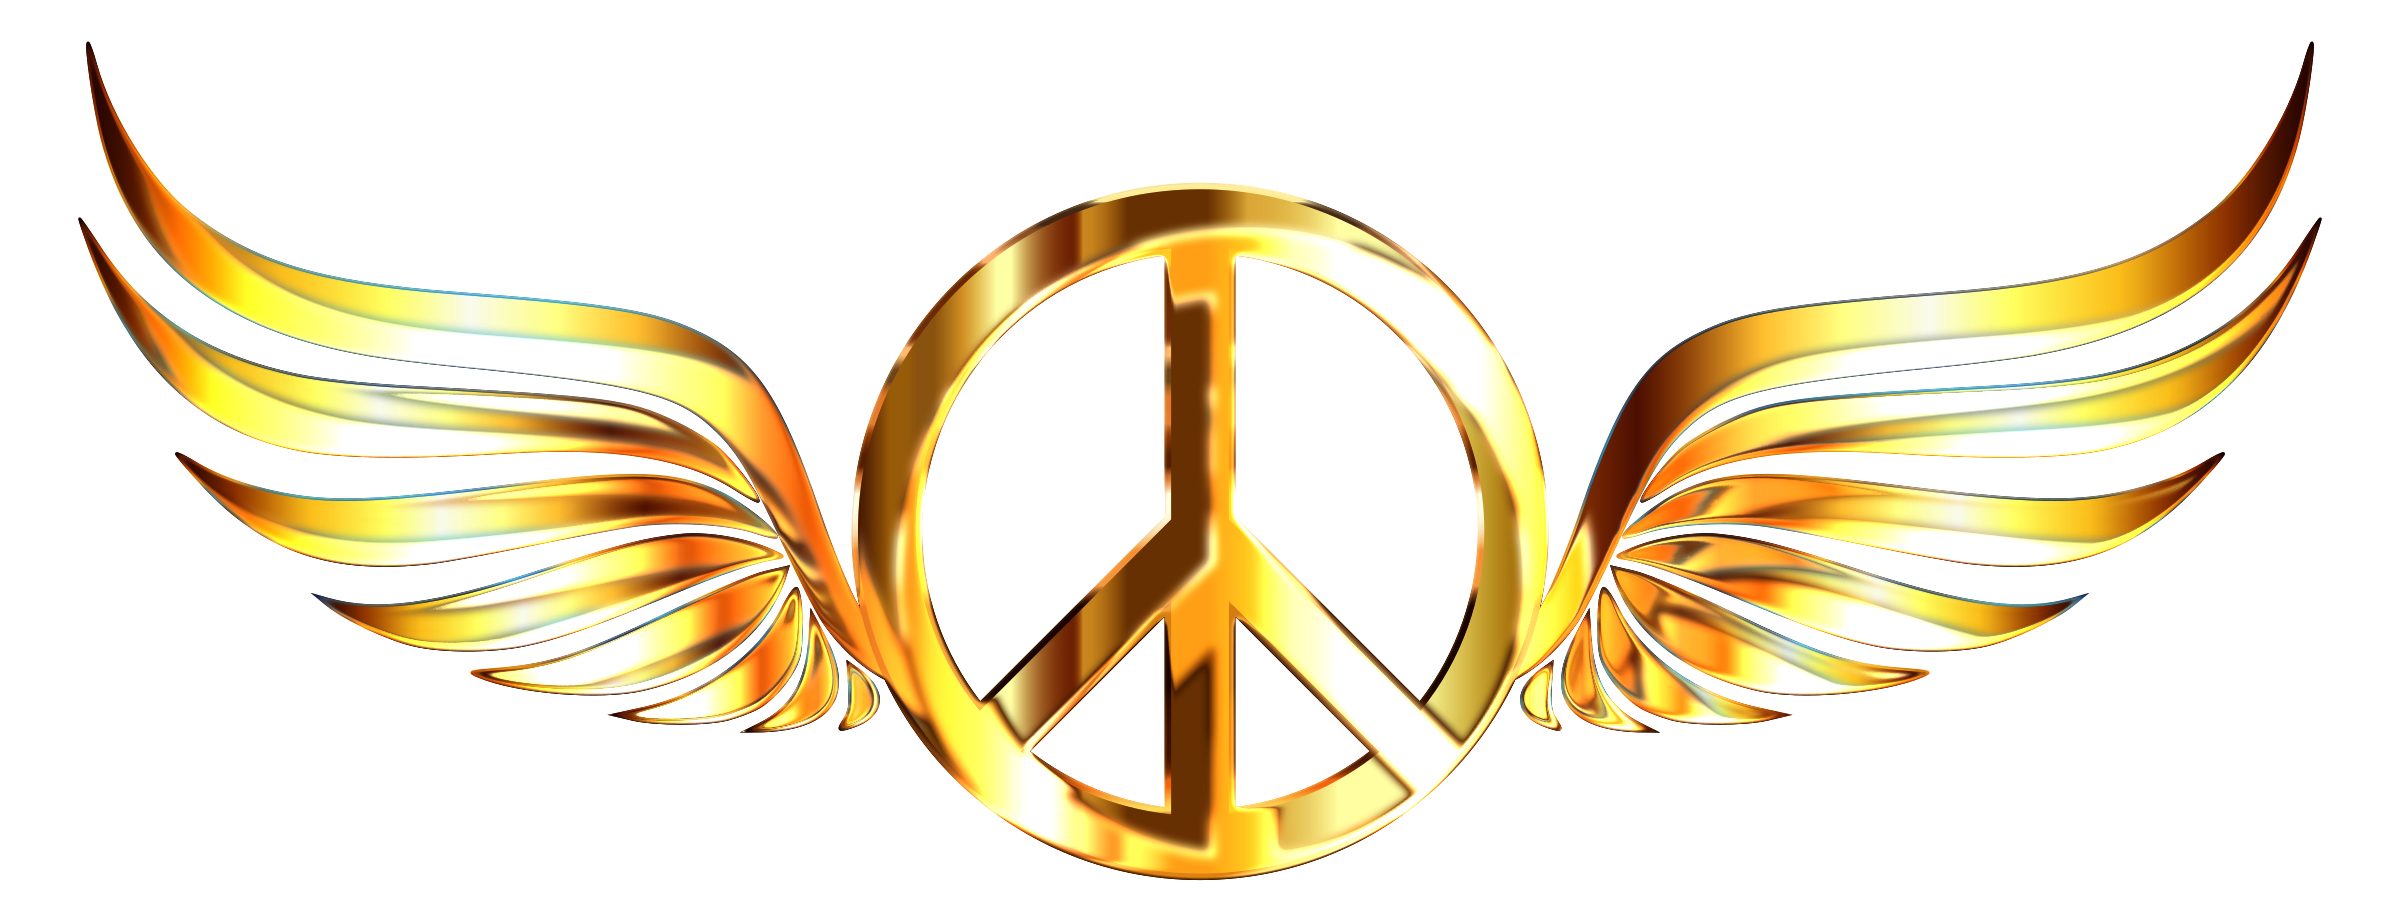 Peace sign wings enhanced. Wing clipart gold